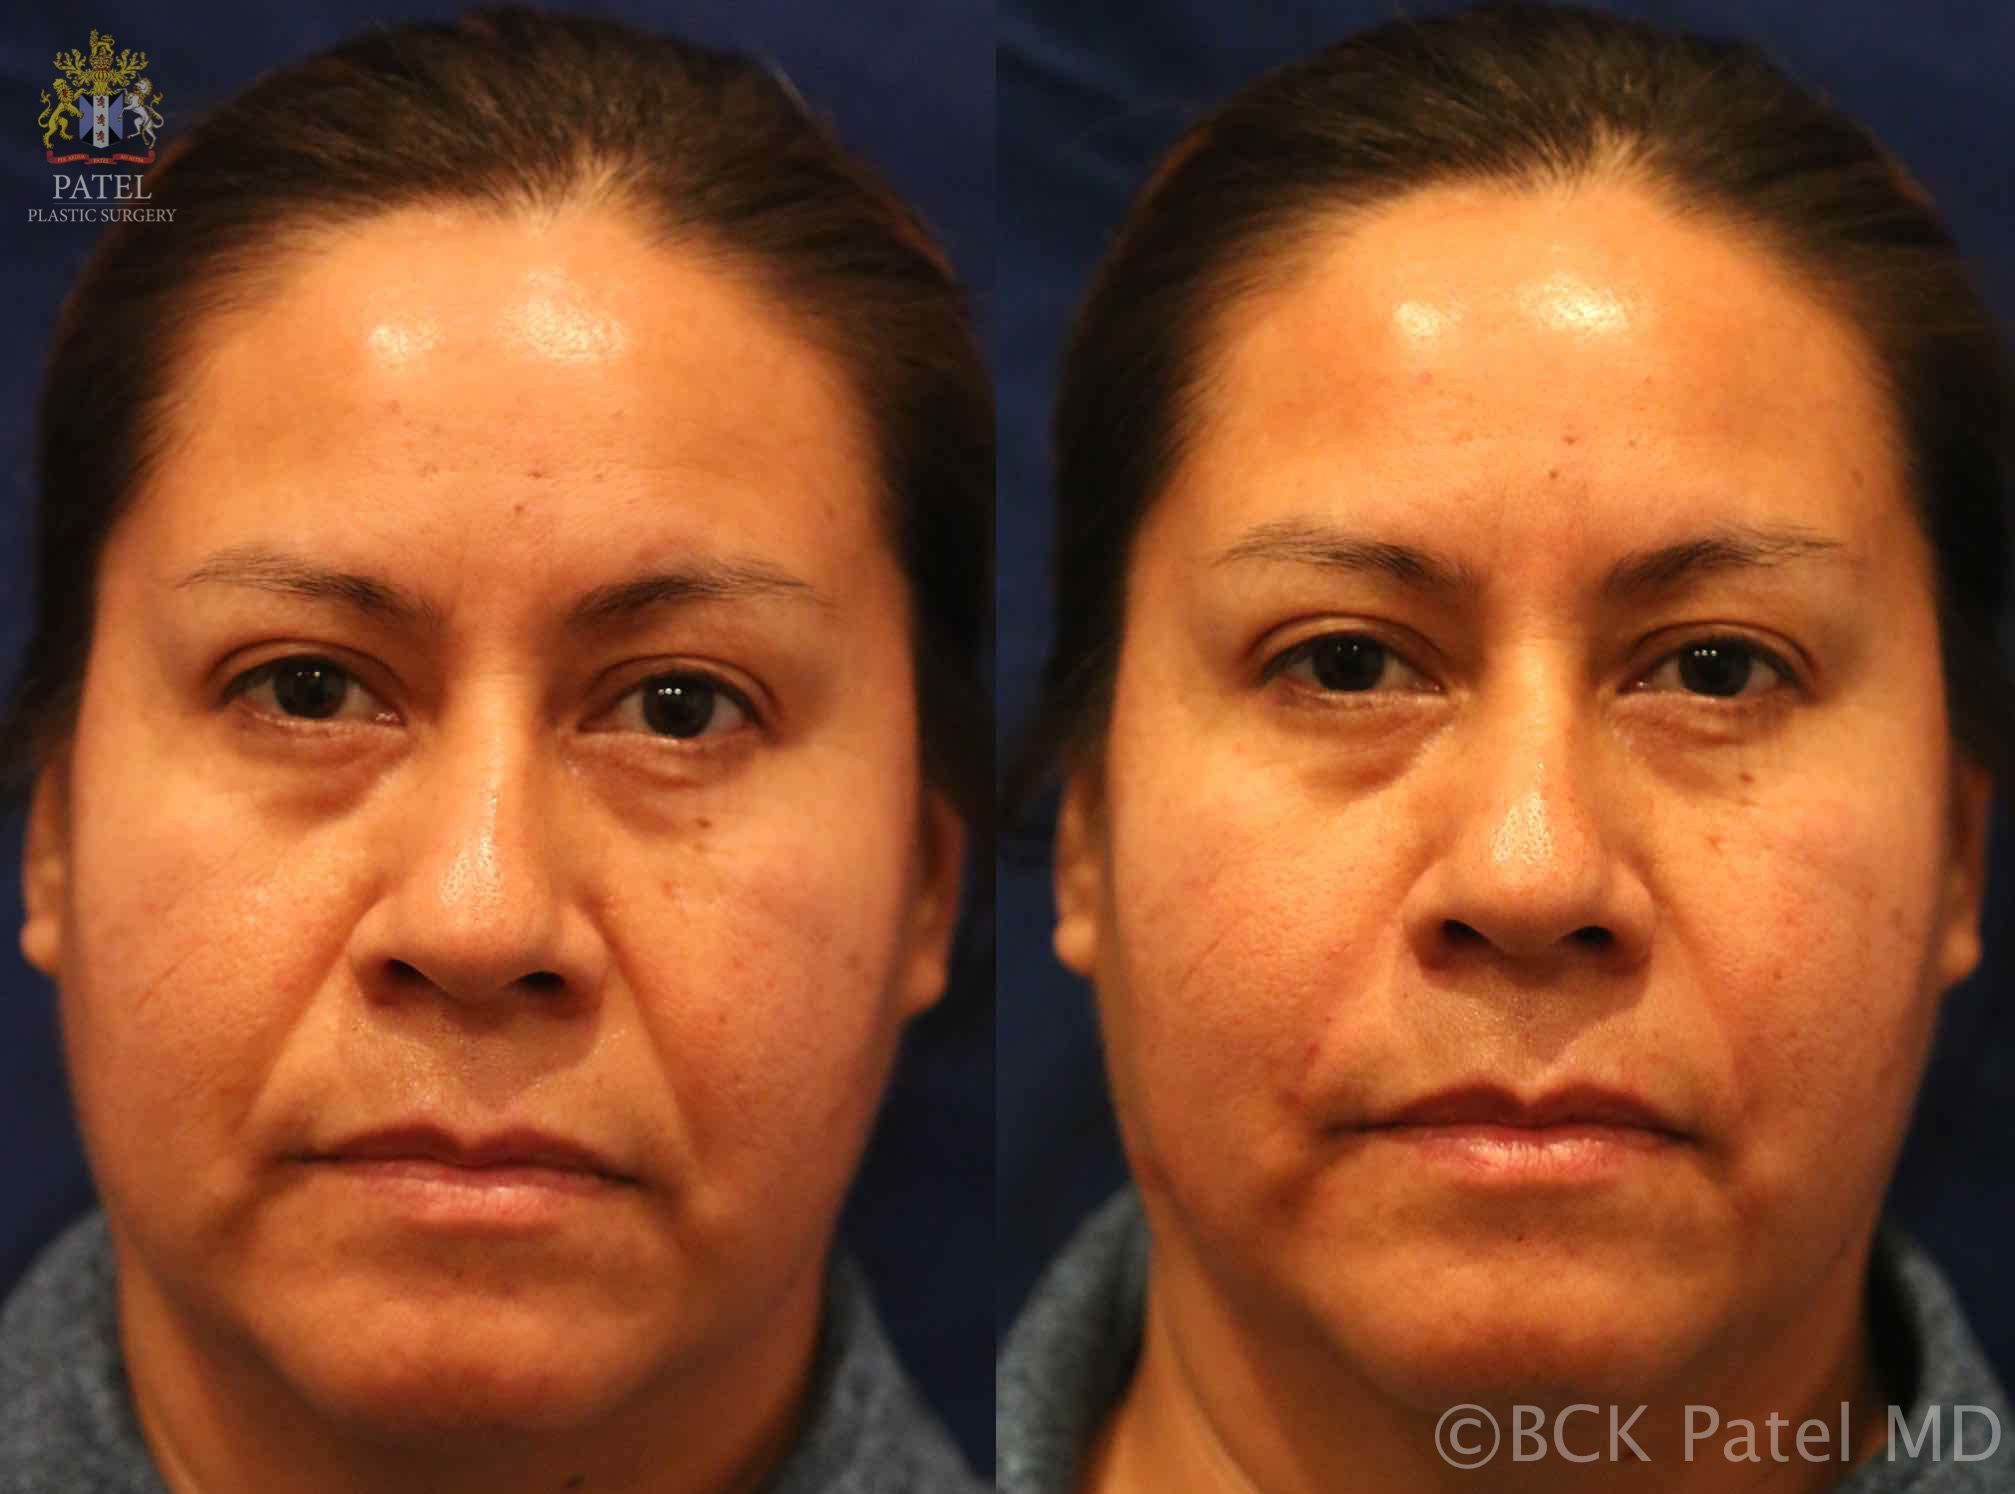 englishsurgeon.com. Photos of improvement in cheeks and nasolabial folds with fillers